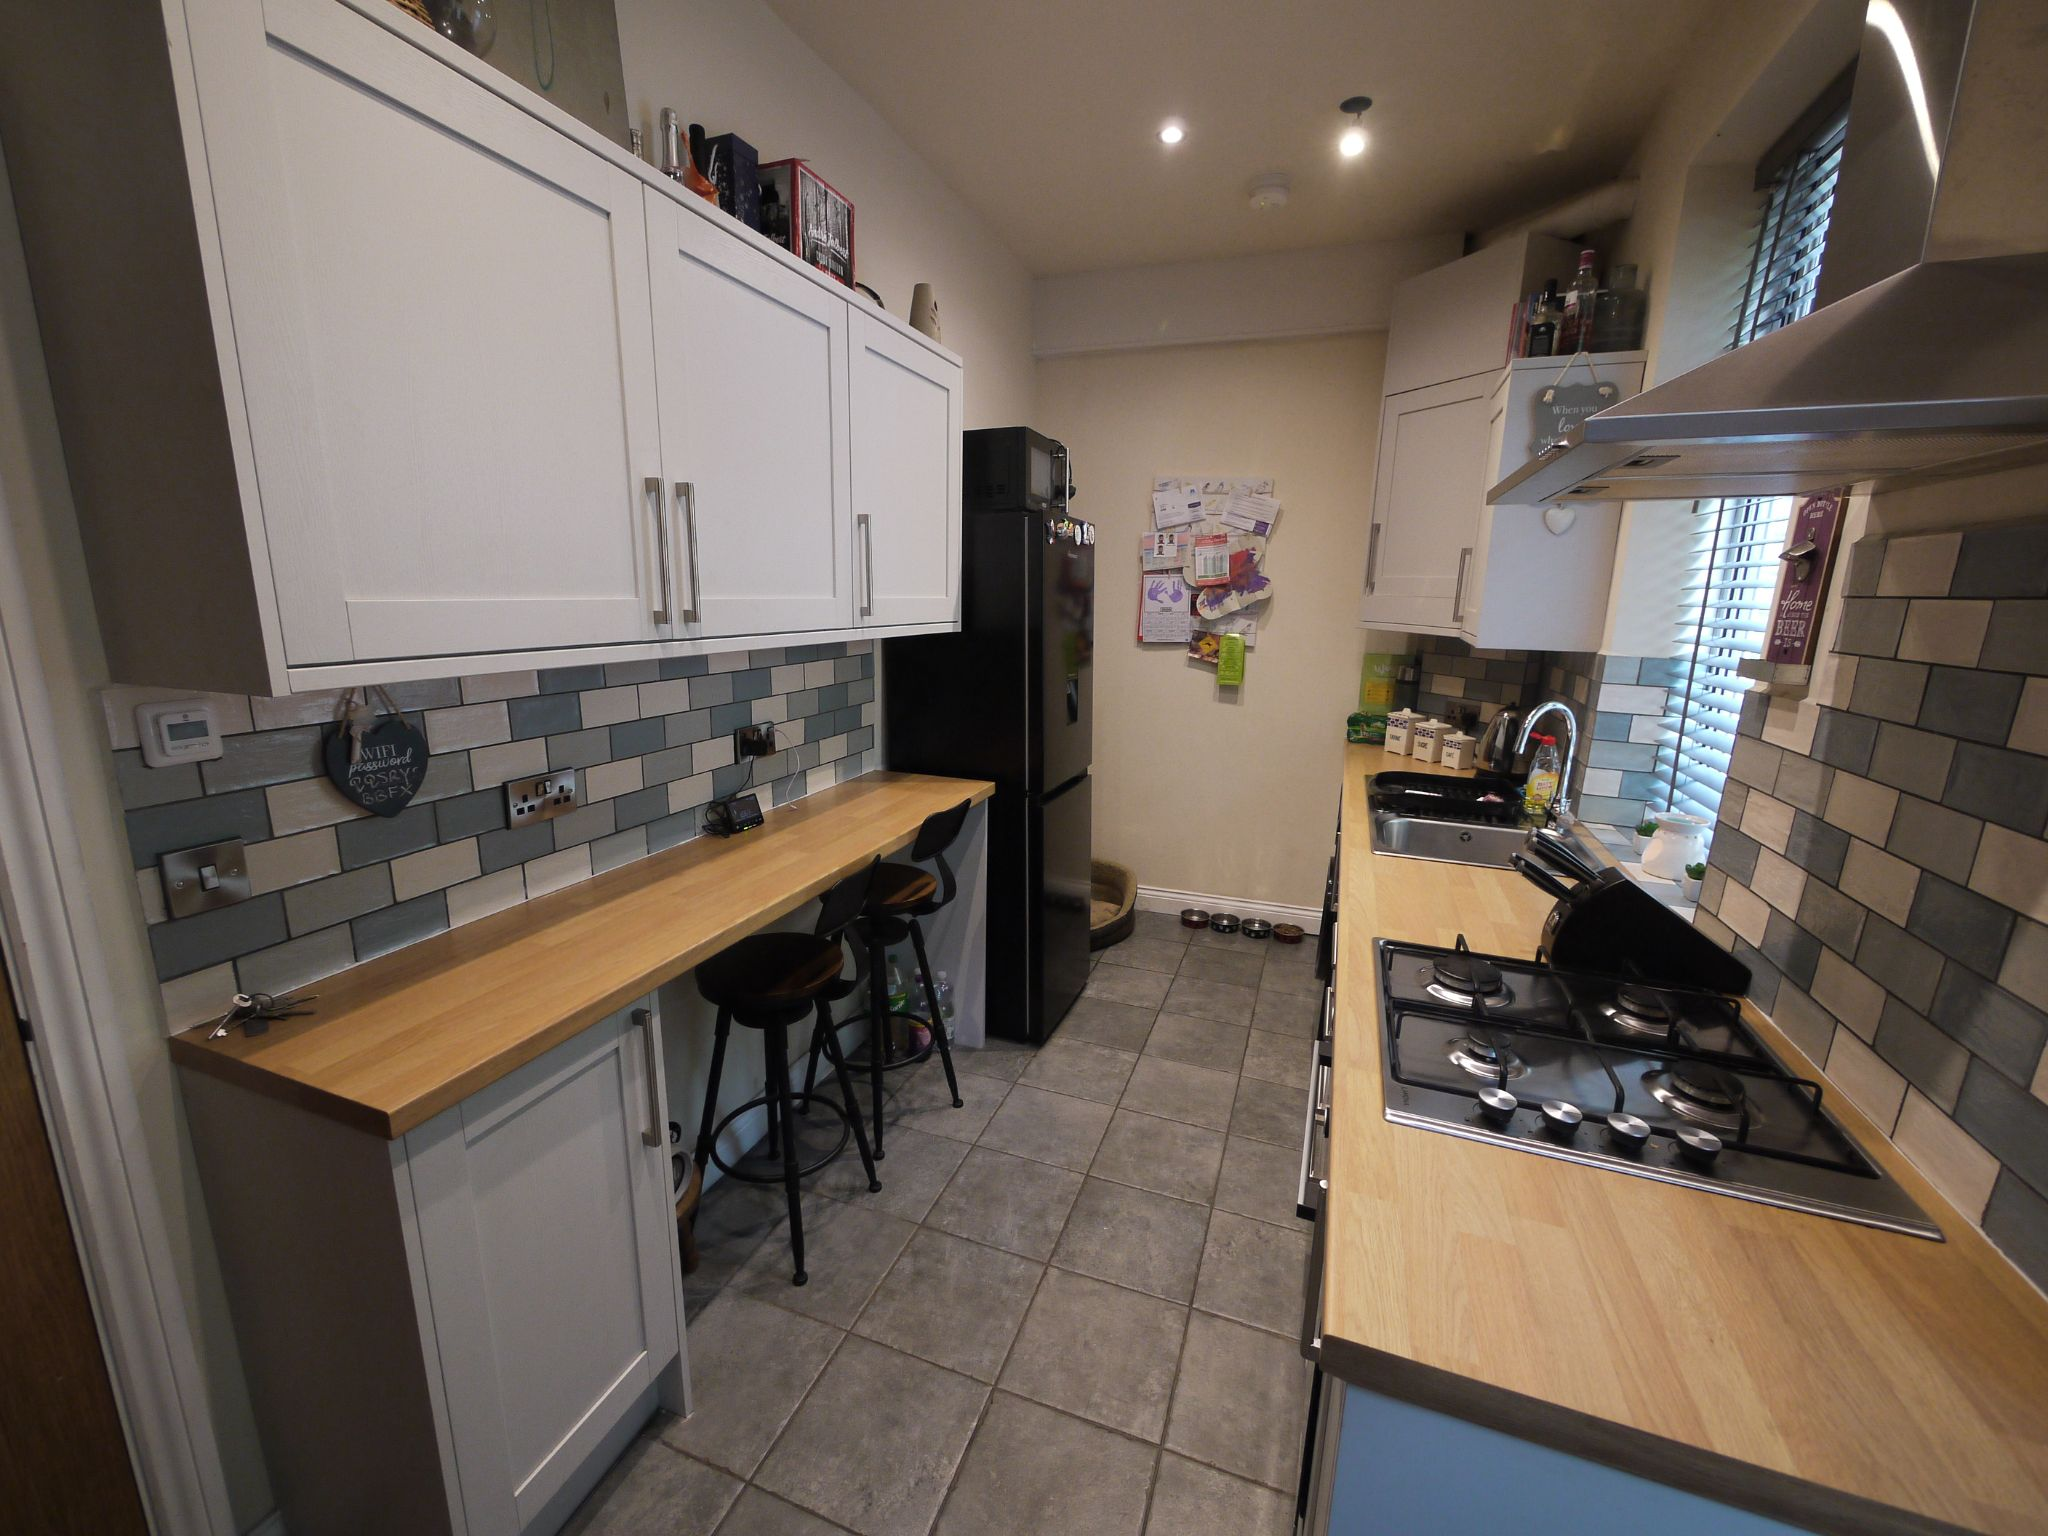 2 bedroom mid terraced house SSTC in Brighouse - Kitchen 1.